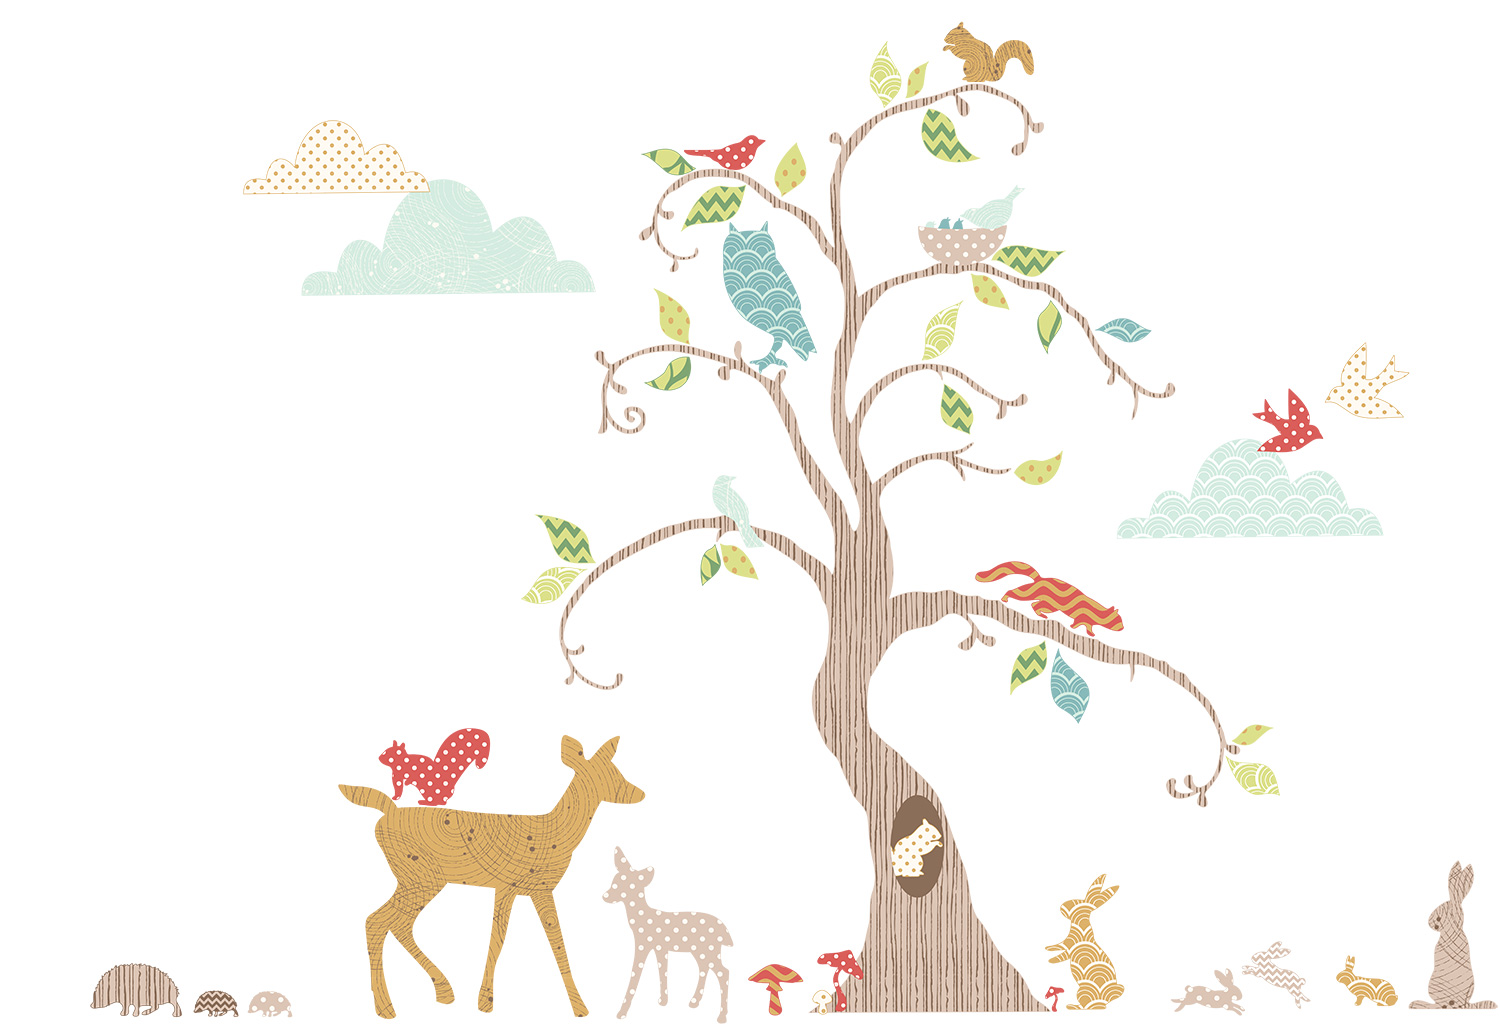 funtosee wandsticker wandtattoo wandbild waldtiere deko set www 4. Black Bedroom Furniture Sets. Home Design Ideas